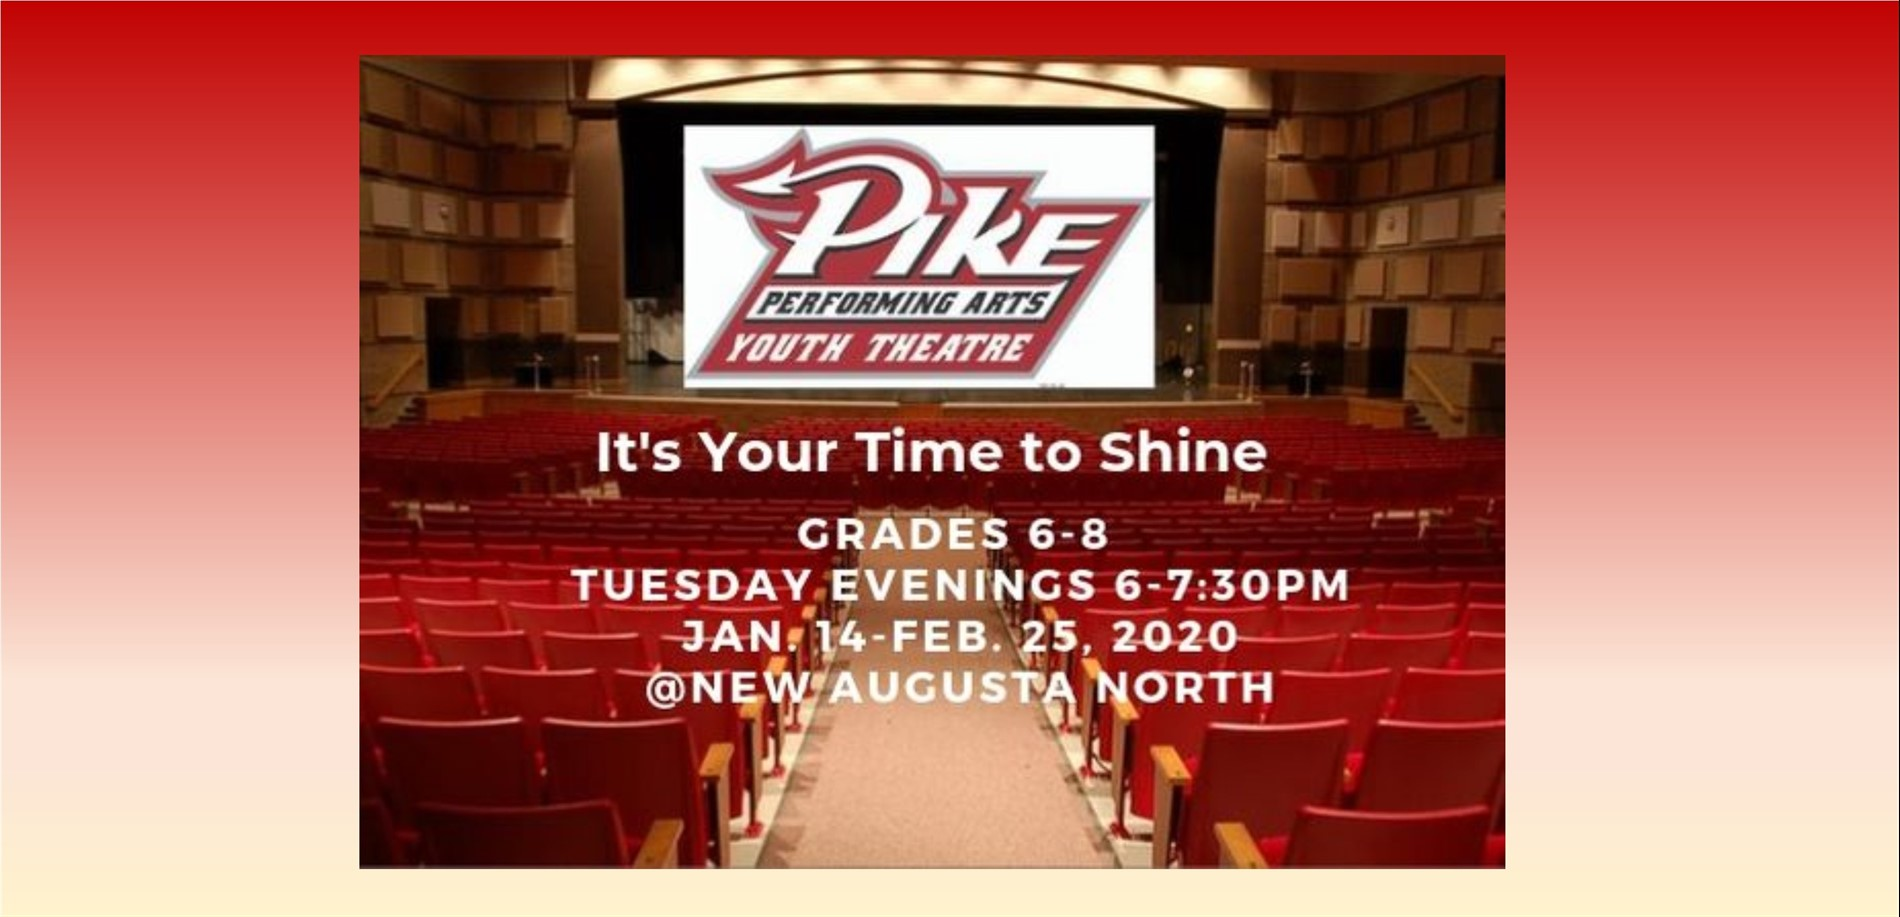 Pike Youth Theater